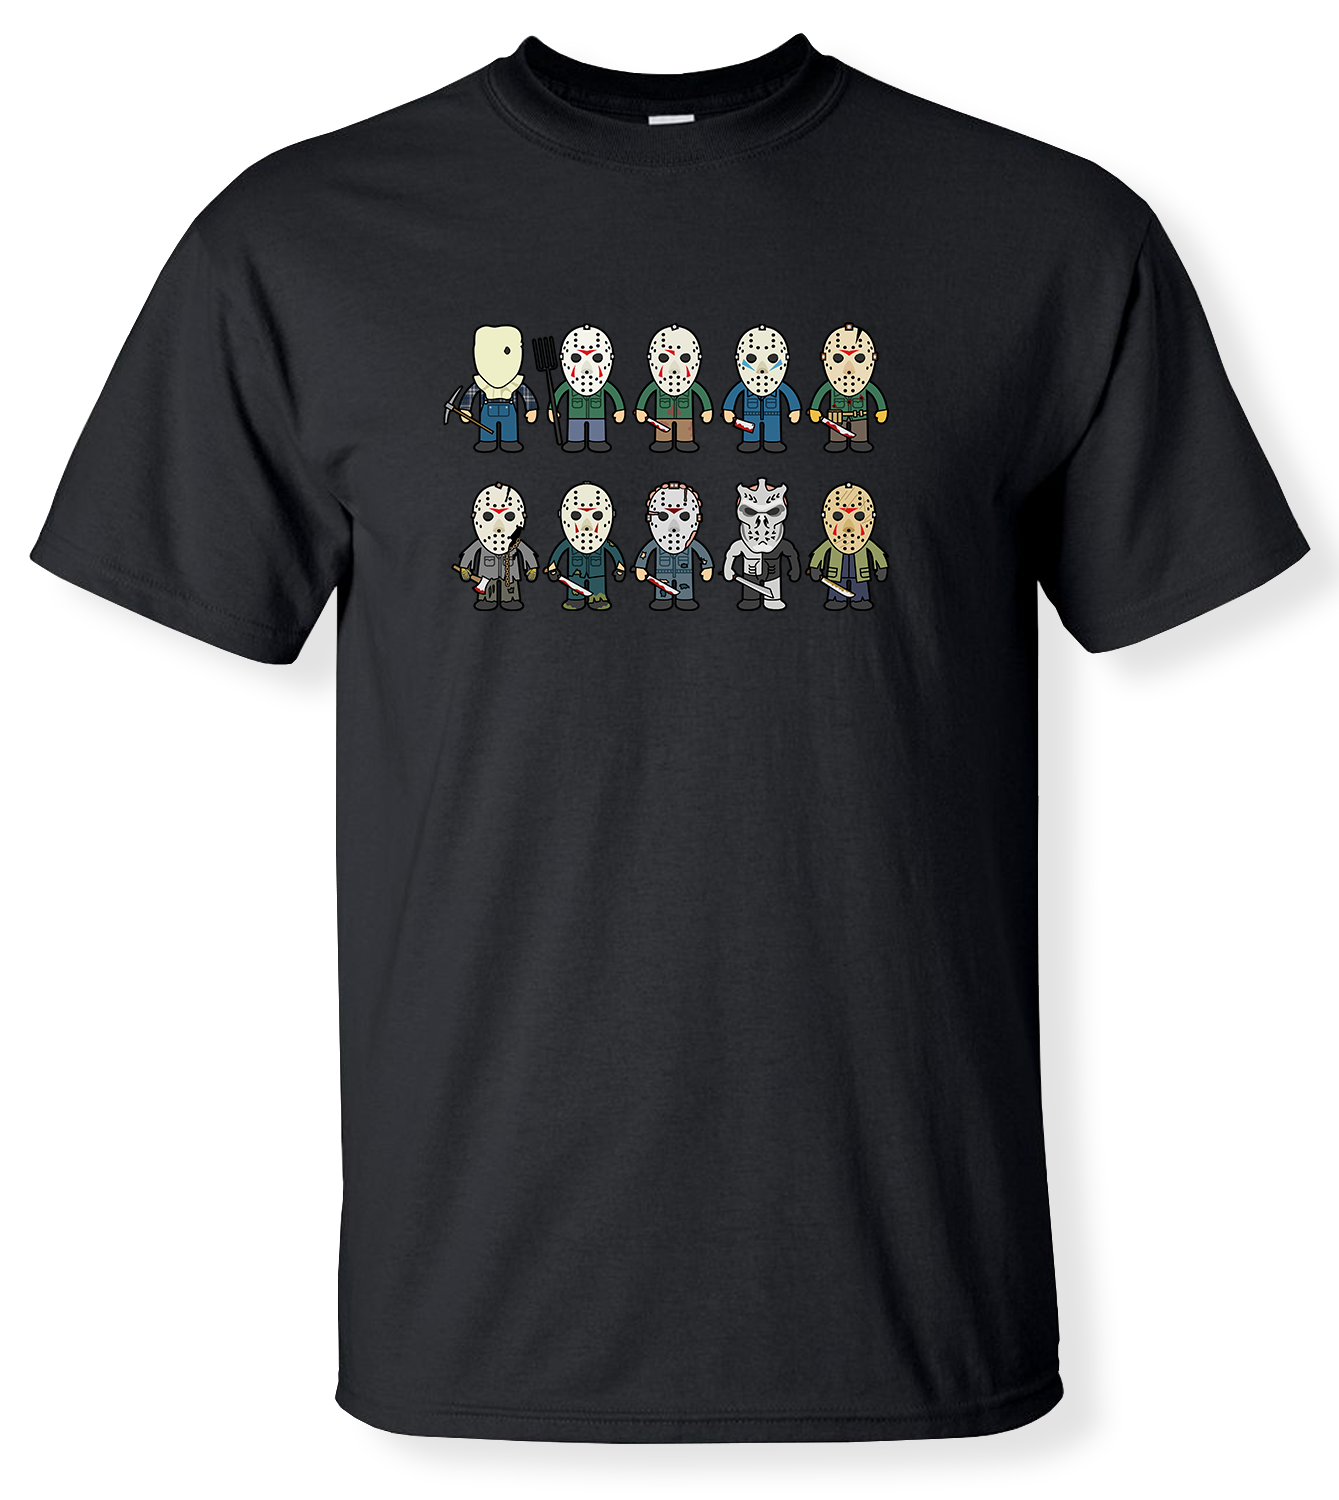 Image of Jasons T-Shirt